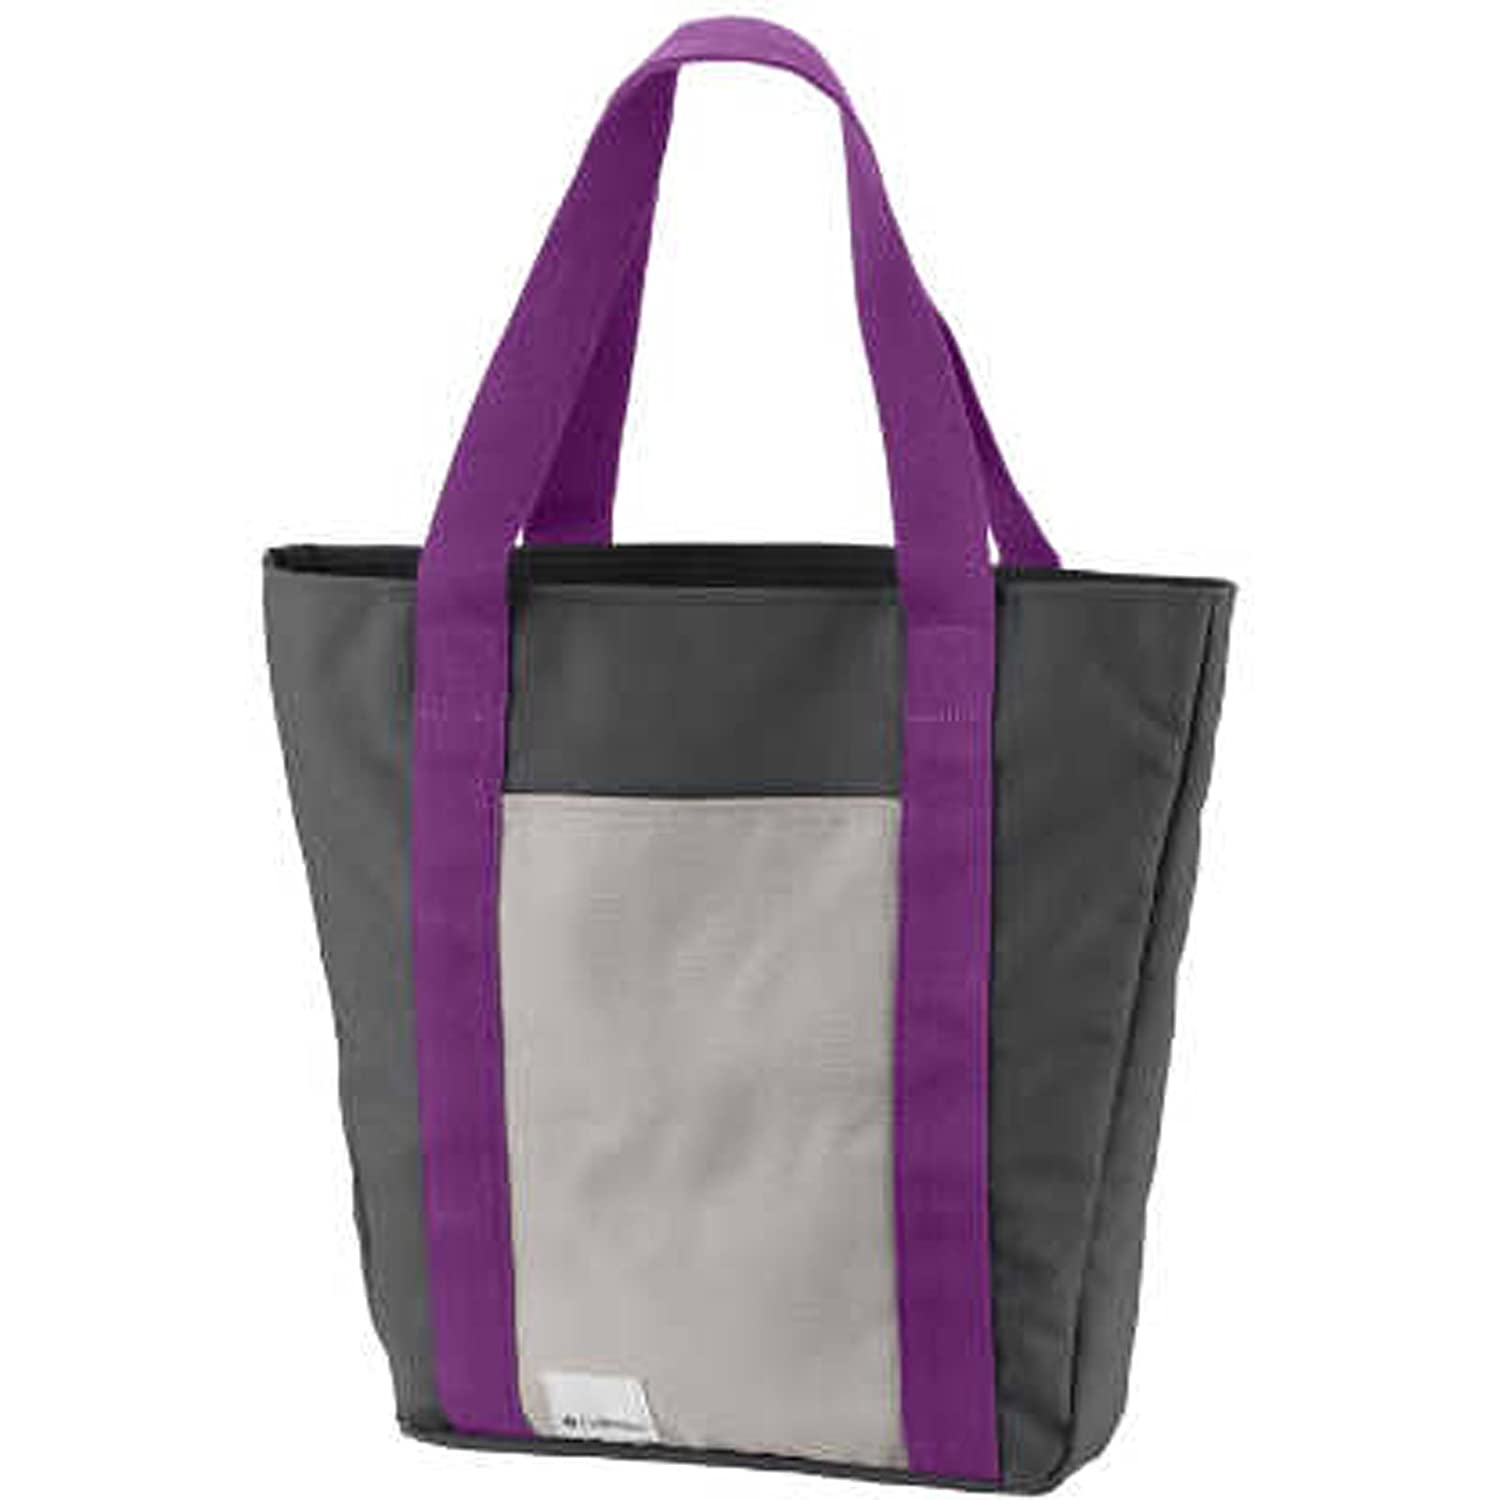 Columbia Sportswear Tried and True Tote Bag